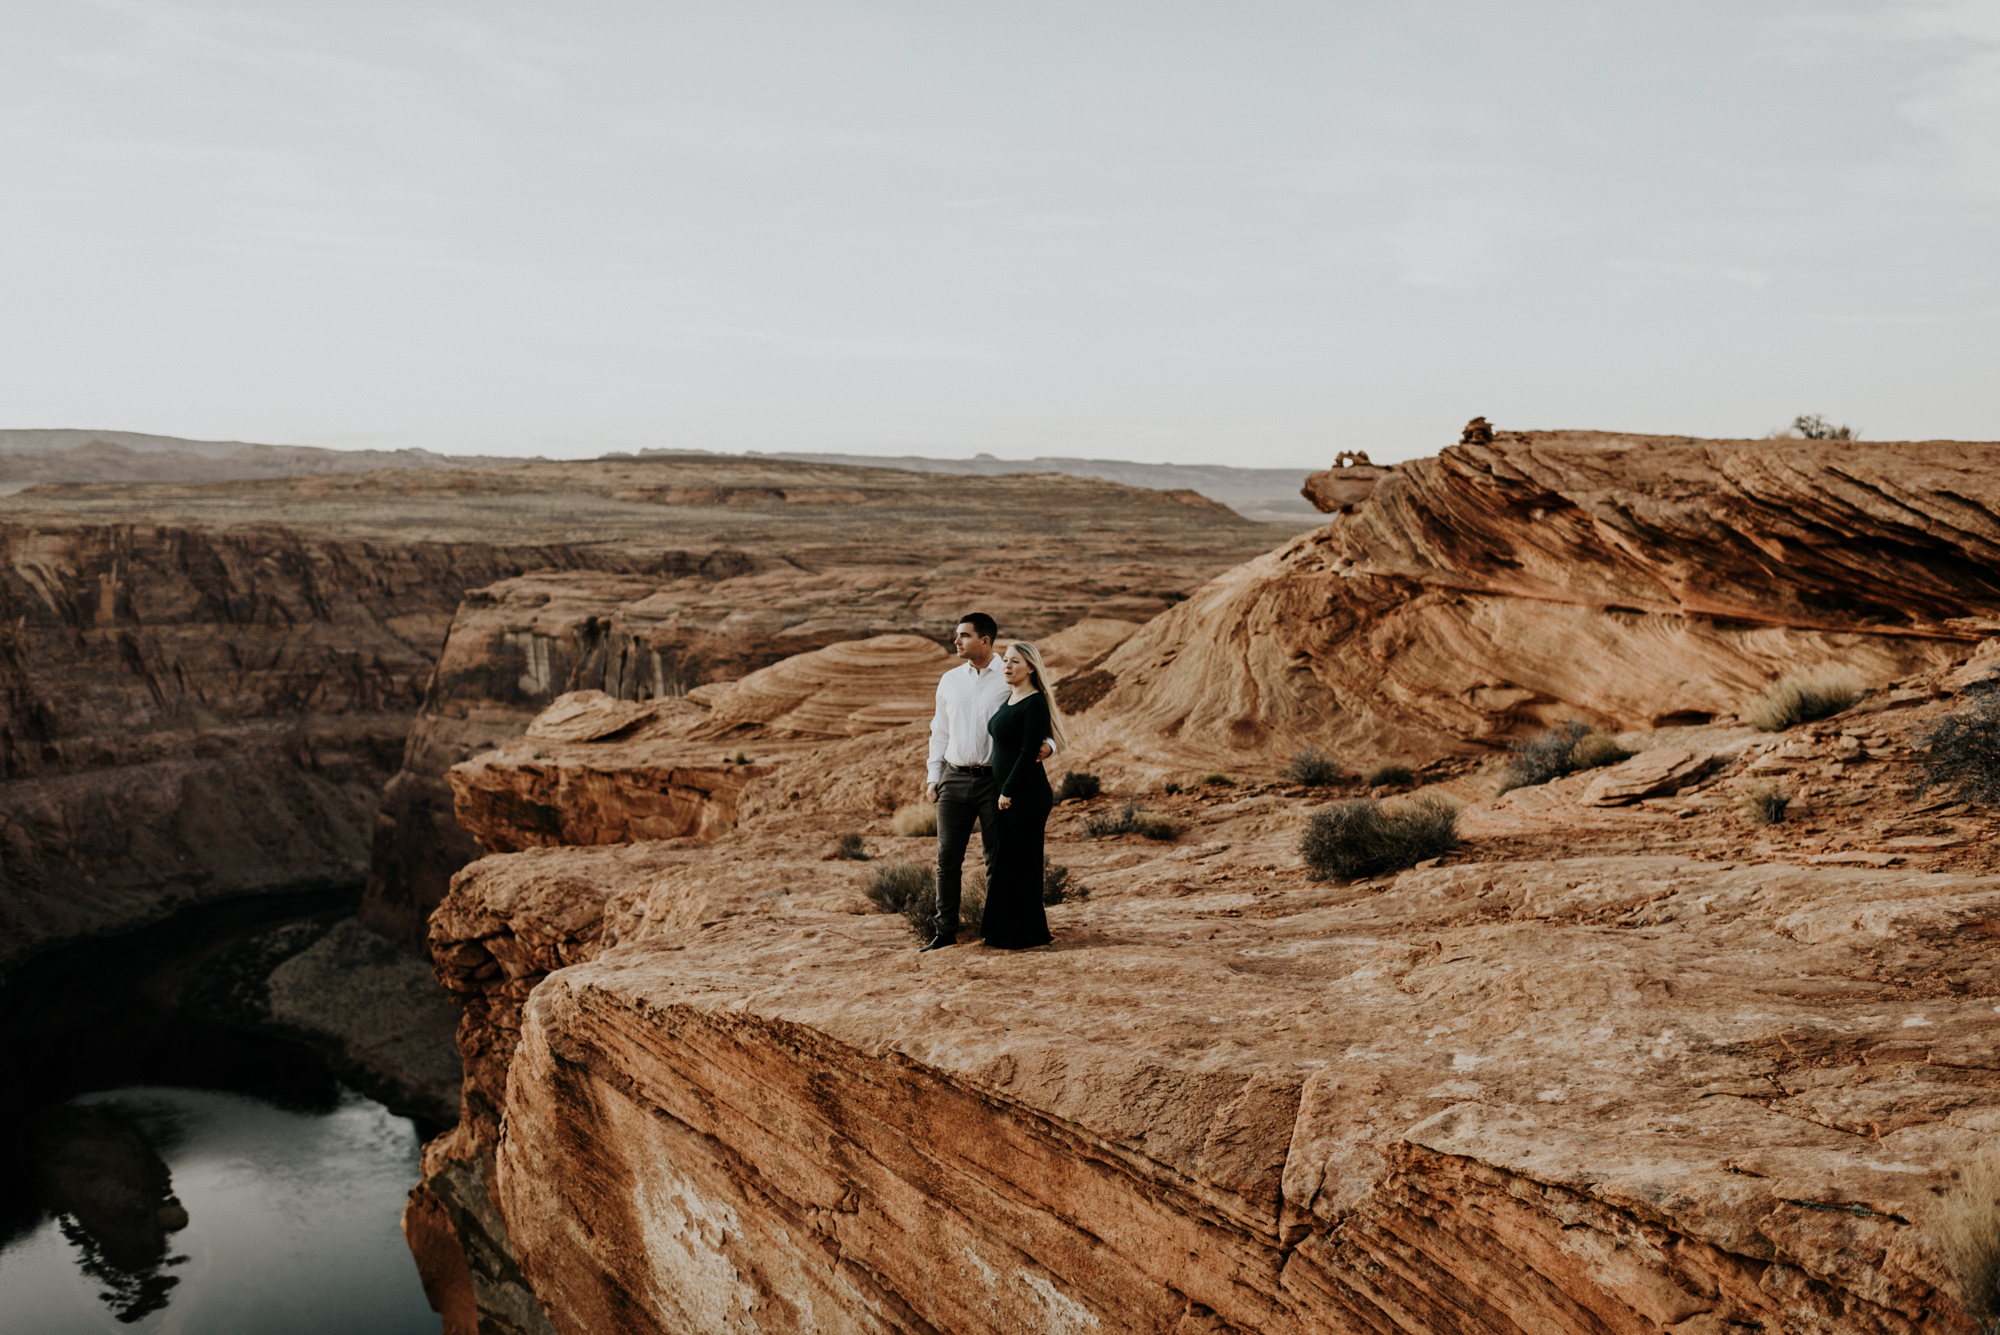 Anniversary Adventure Session, Elopement Photographer at Horseshoe Bend in Page, ArizonaAnniversary Adventure Session, Elopement Photographer at Horseshoe Bend in Page, Arizona